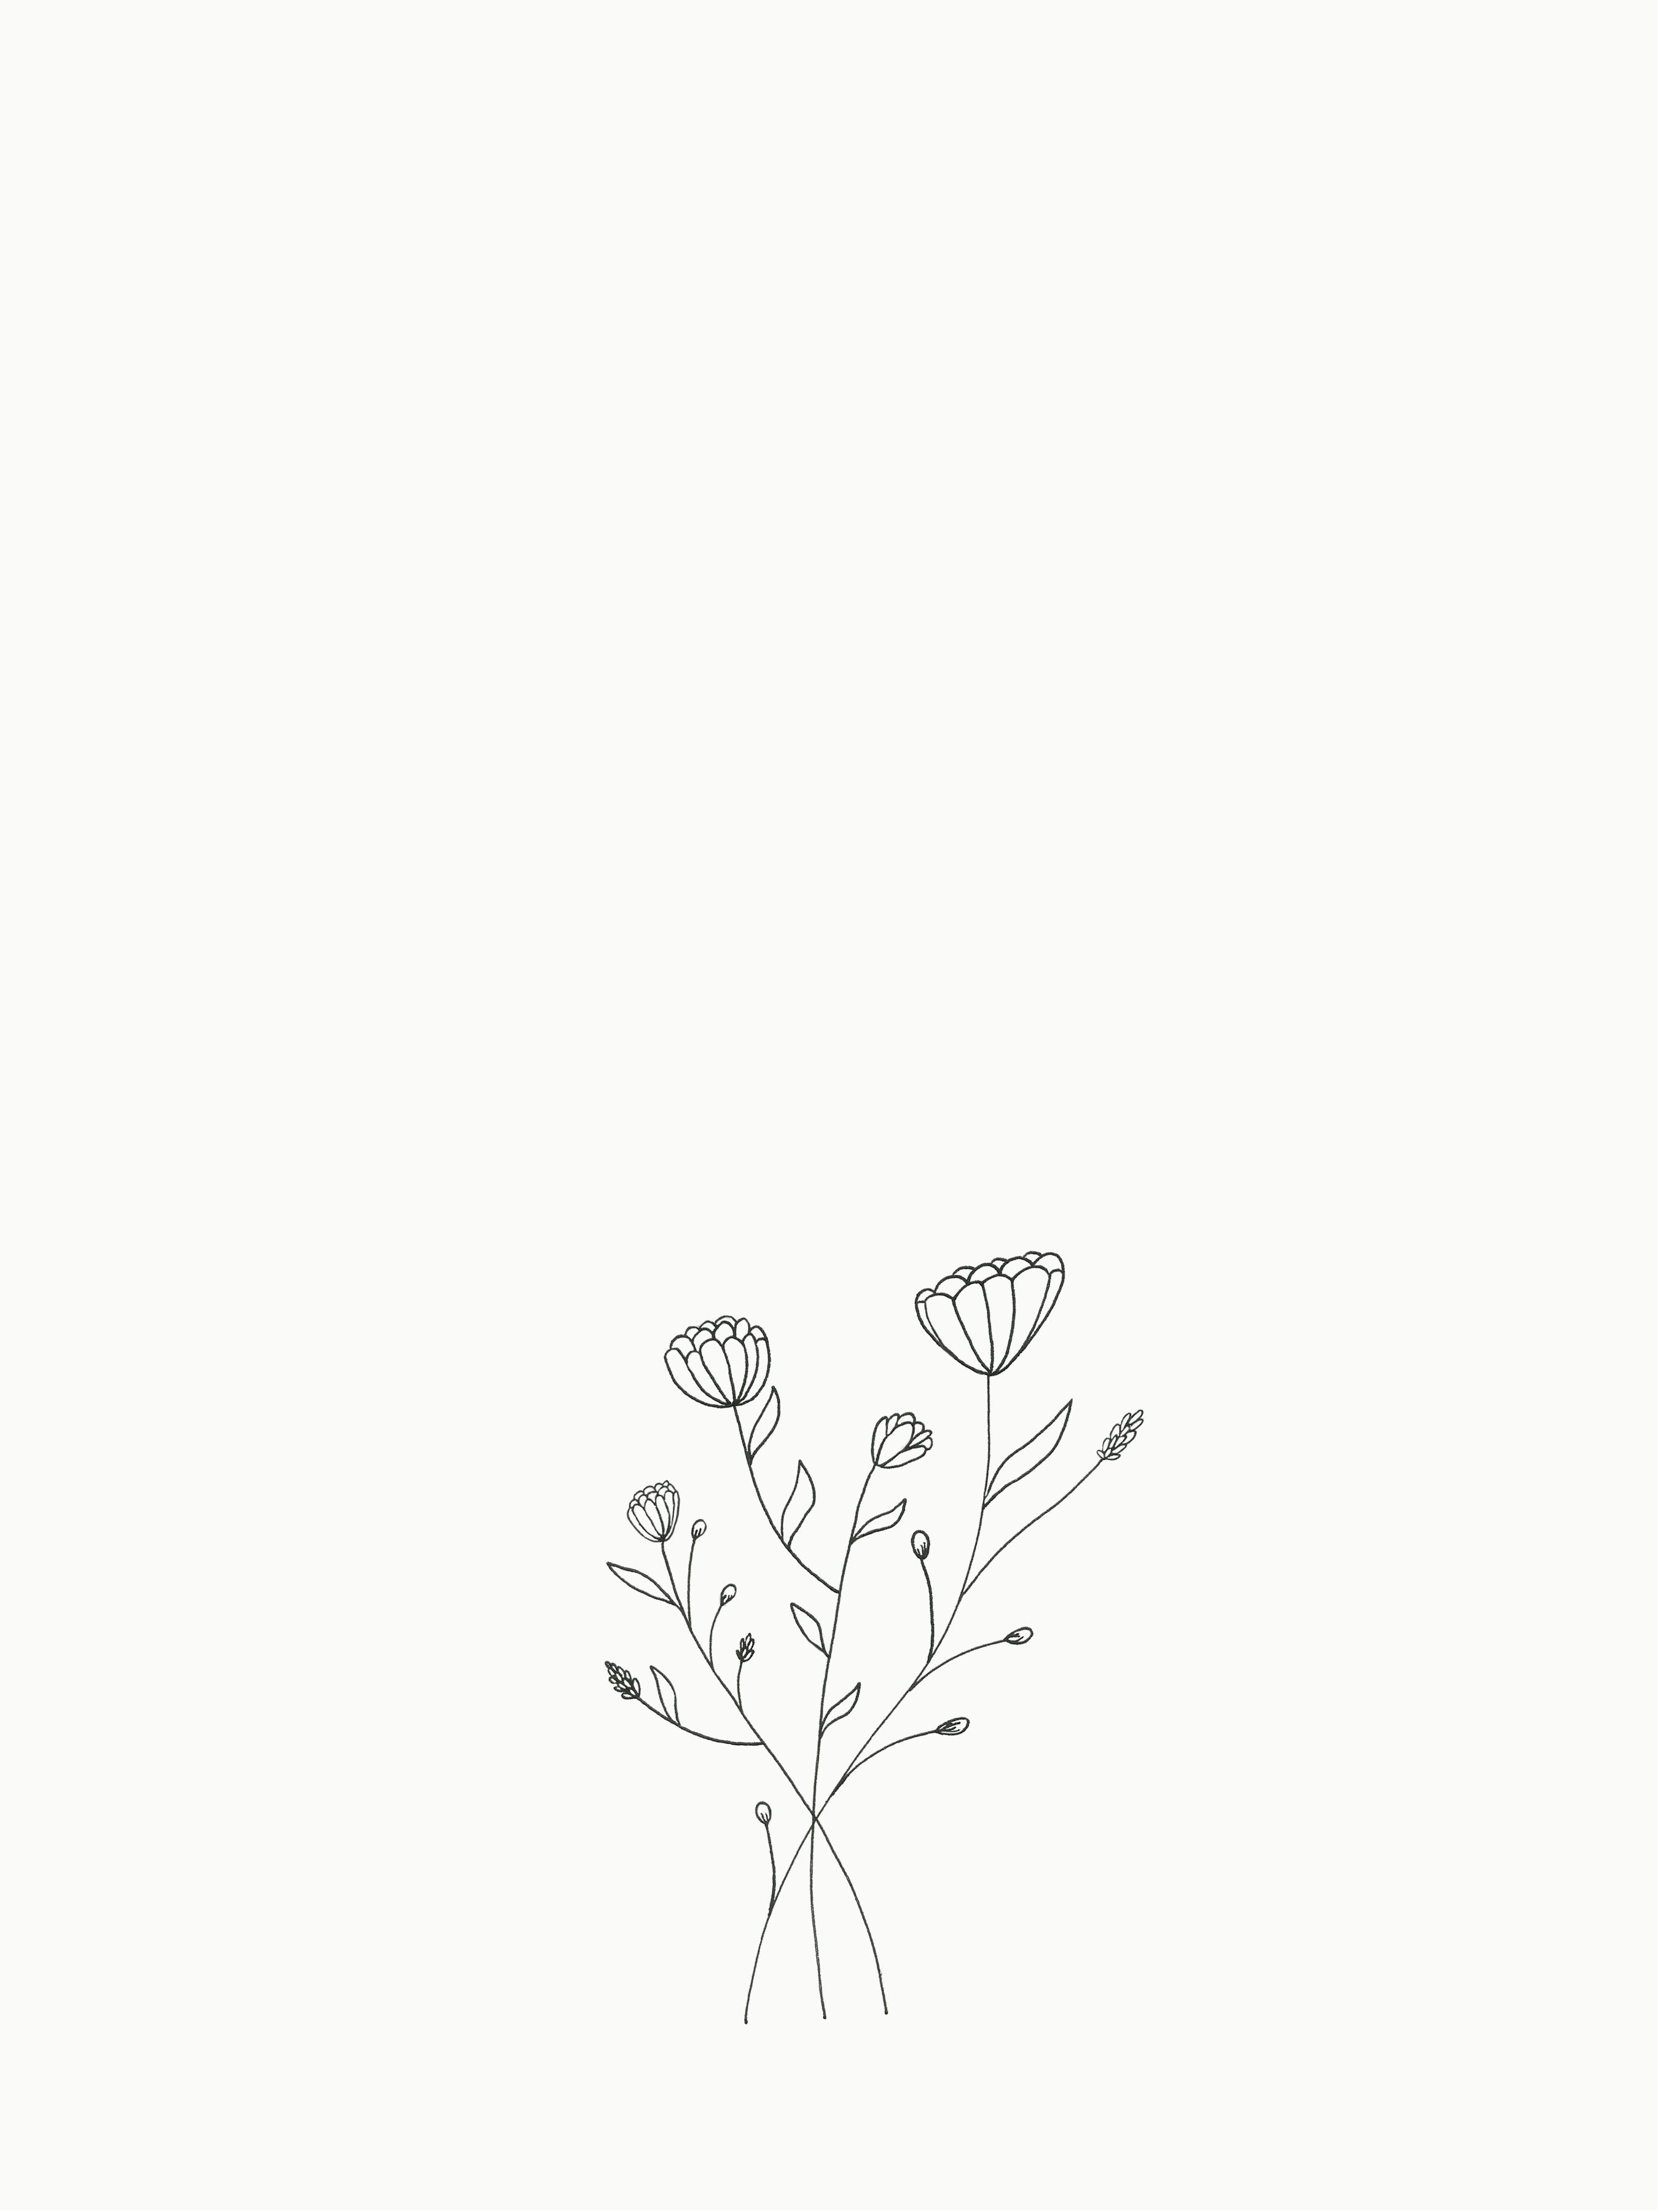 Small Bouquet Of Flowers Drawing Small Flower Drawings Cute Flower Drawing Flower Drawing